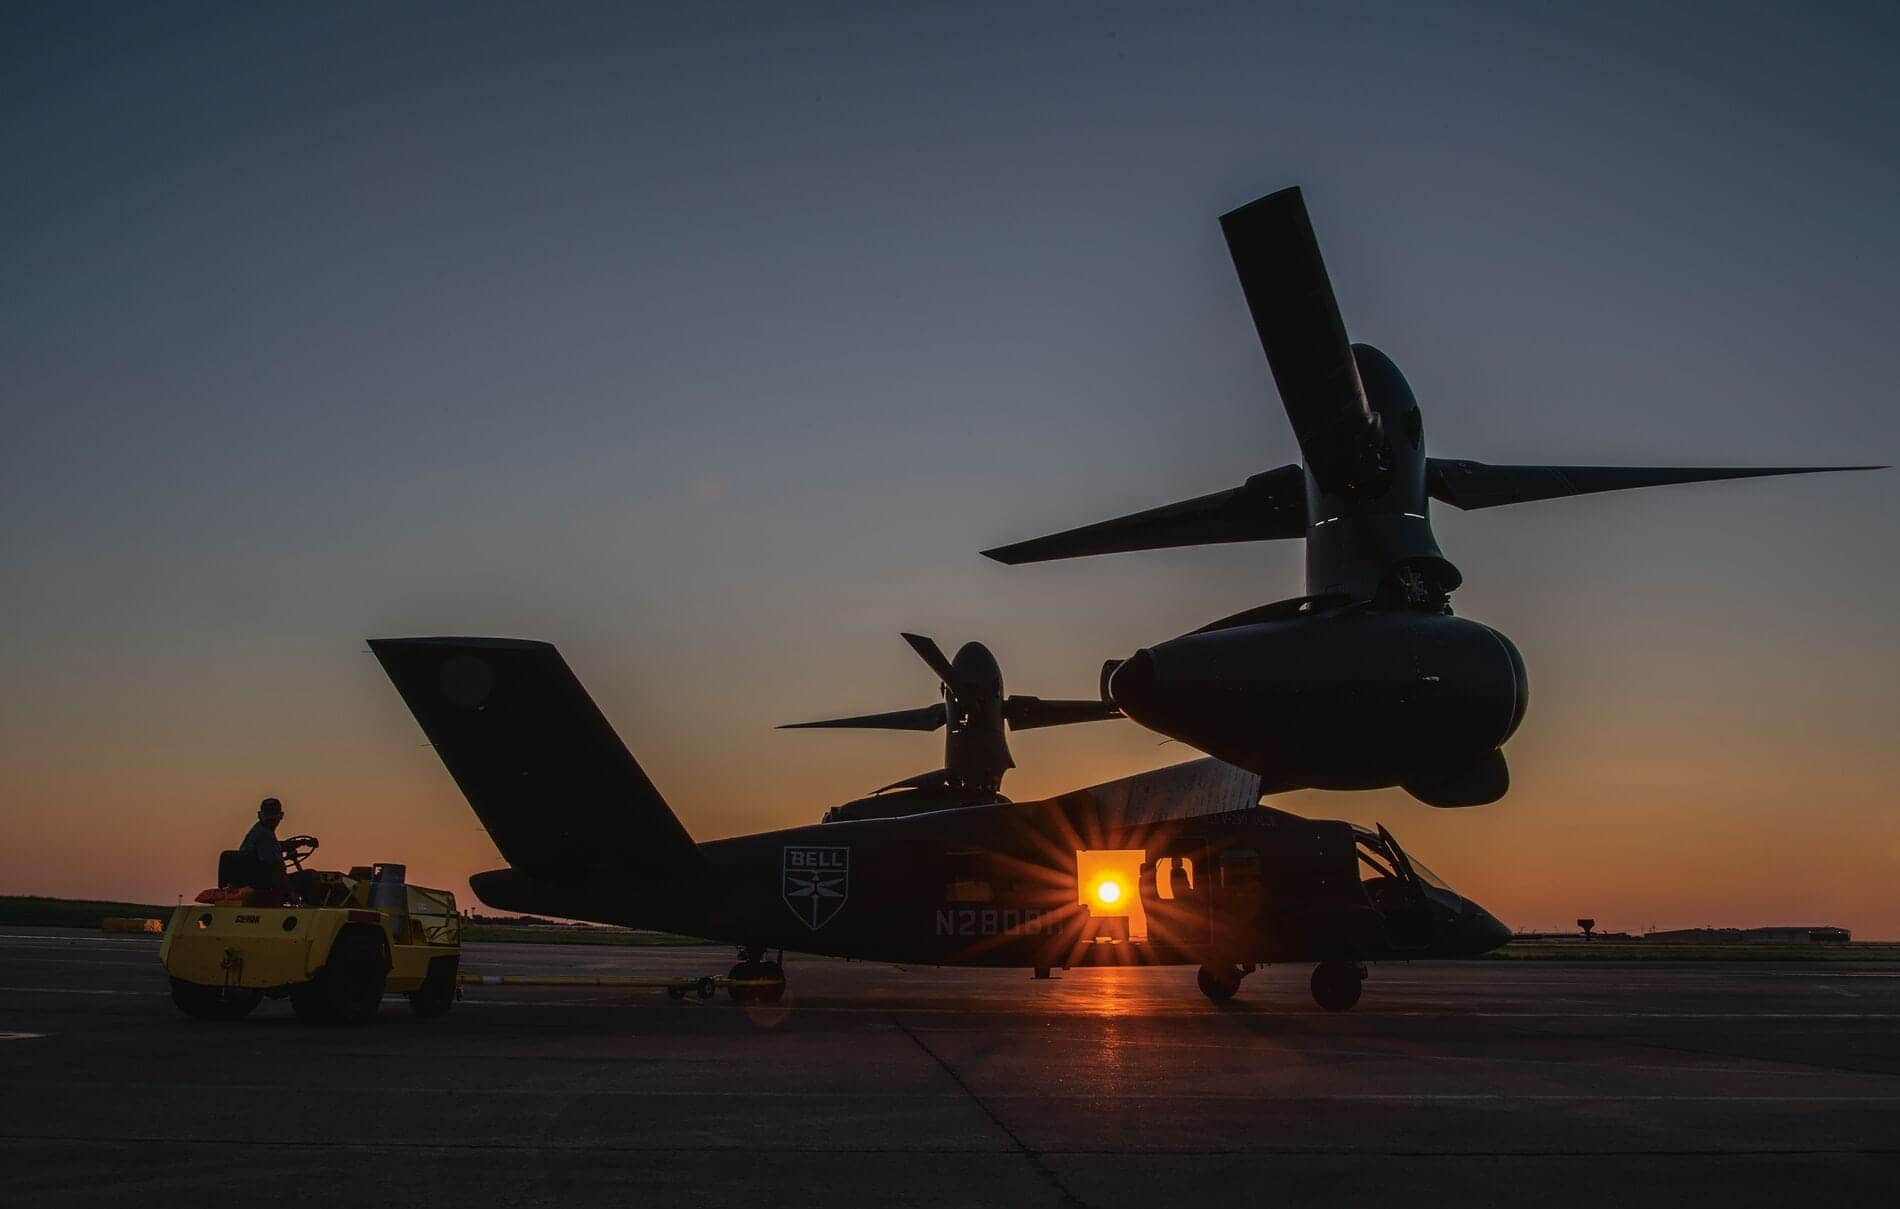 Bell V-280 - Search and Rescue with Revolutionary Reach and